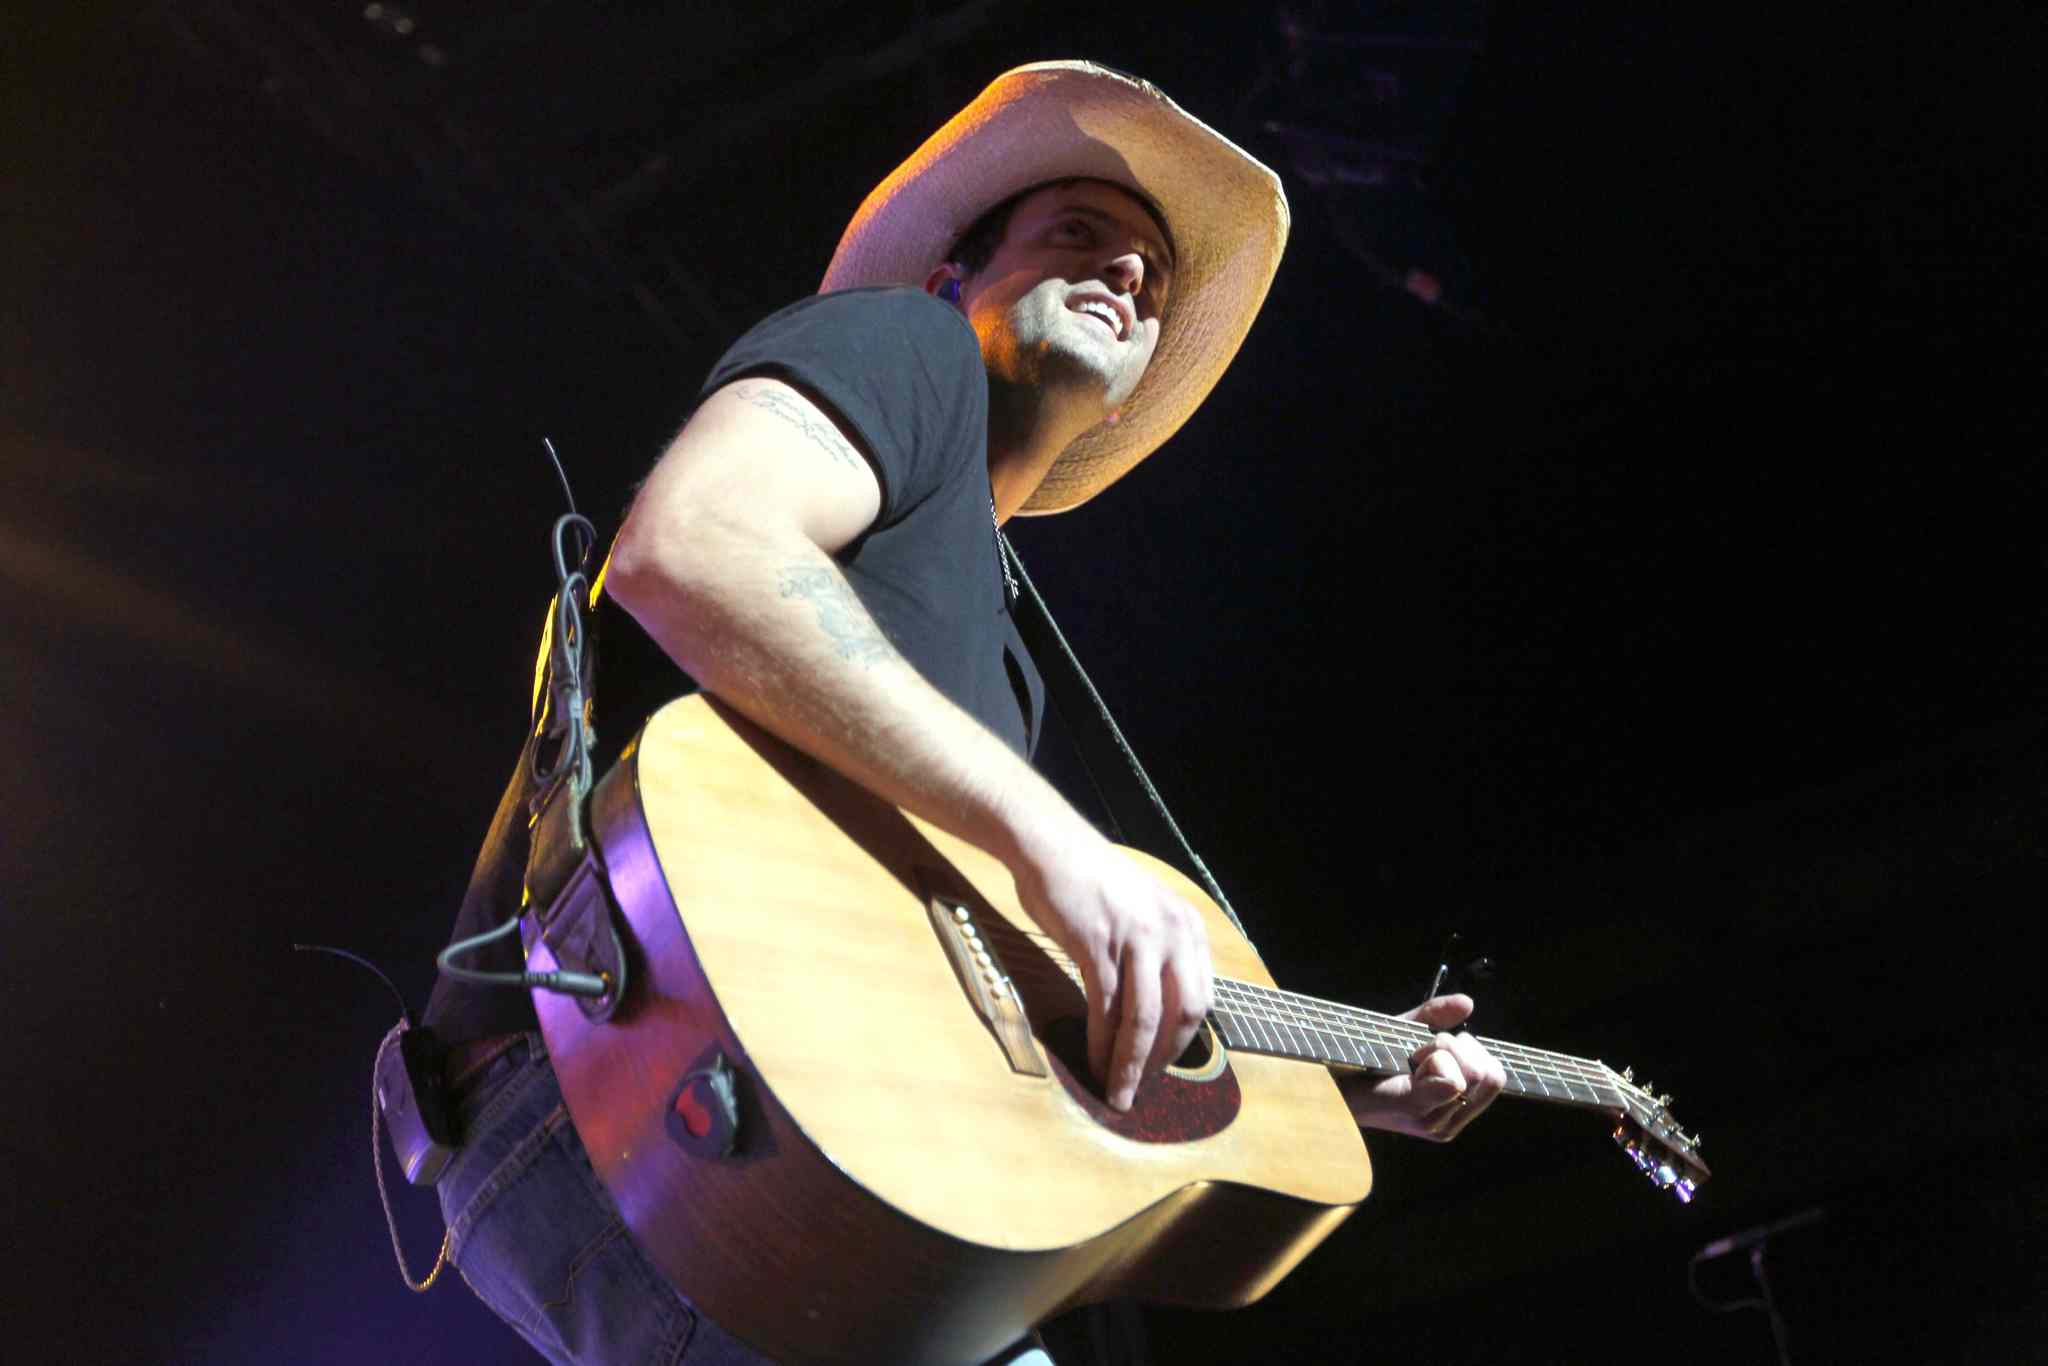 Dean Brody, 38, was born in  Jaffray, B.C. and now lives in Nova Scotia. He's released four studio albums.